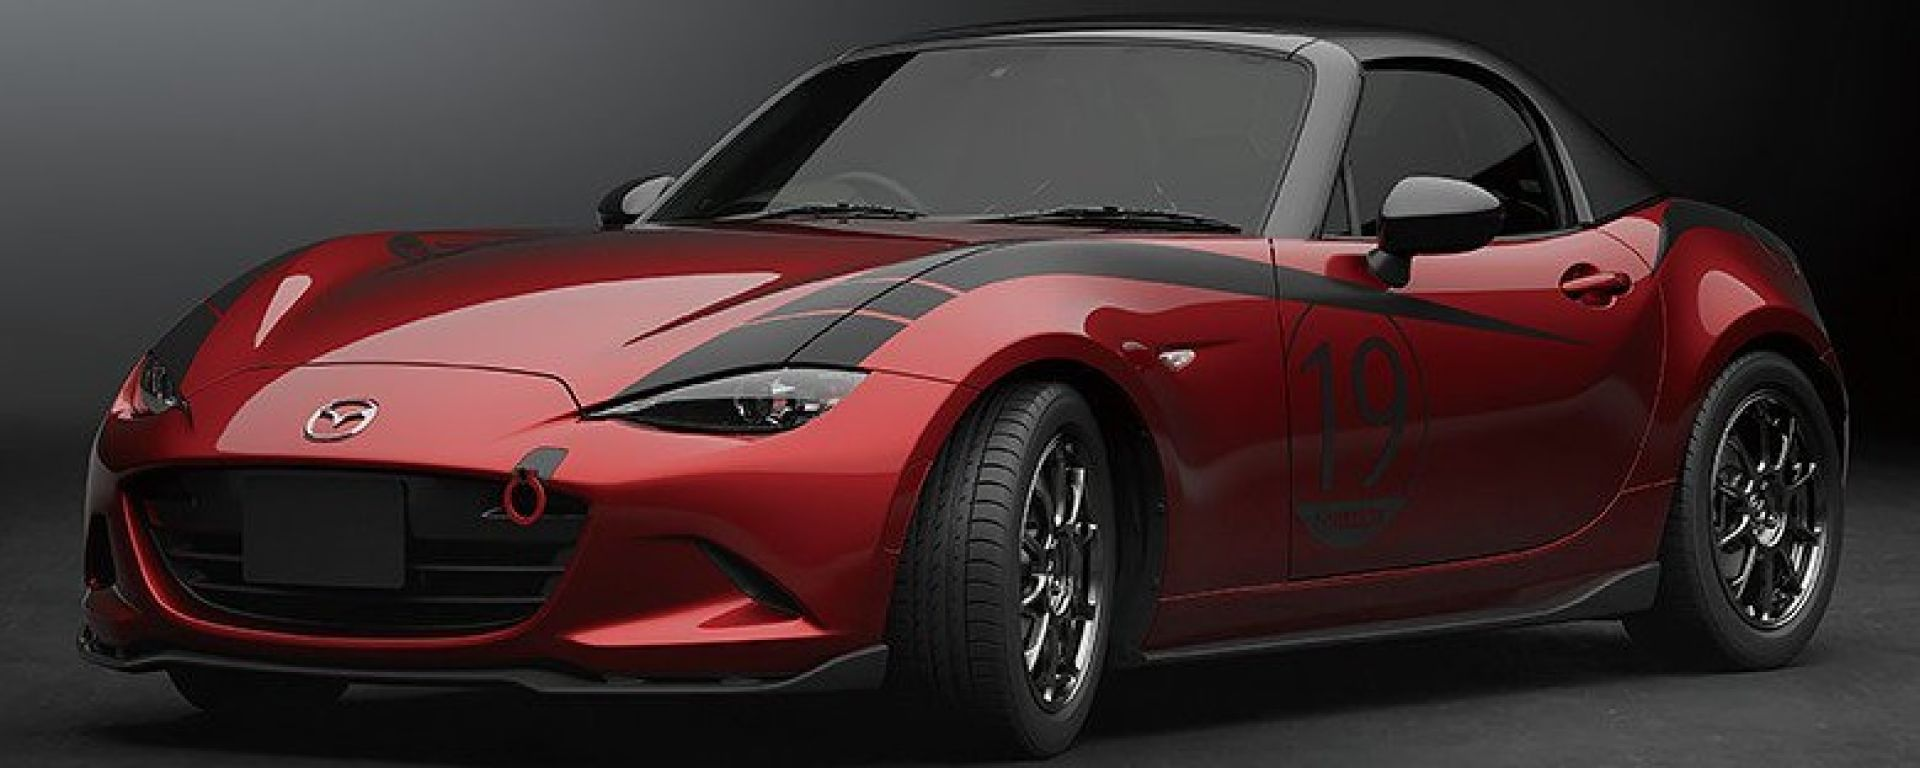 mazda mx 5 nd 2019 hard top ufficiale mazda con la concept motorbox. Black Bedroom Furniture Sets. Home Design Ideas